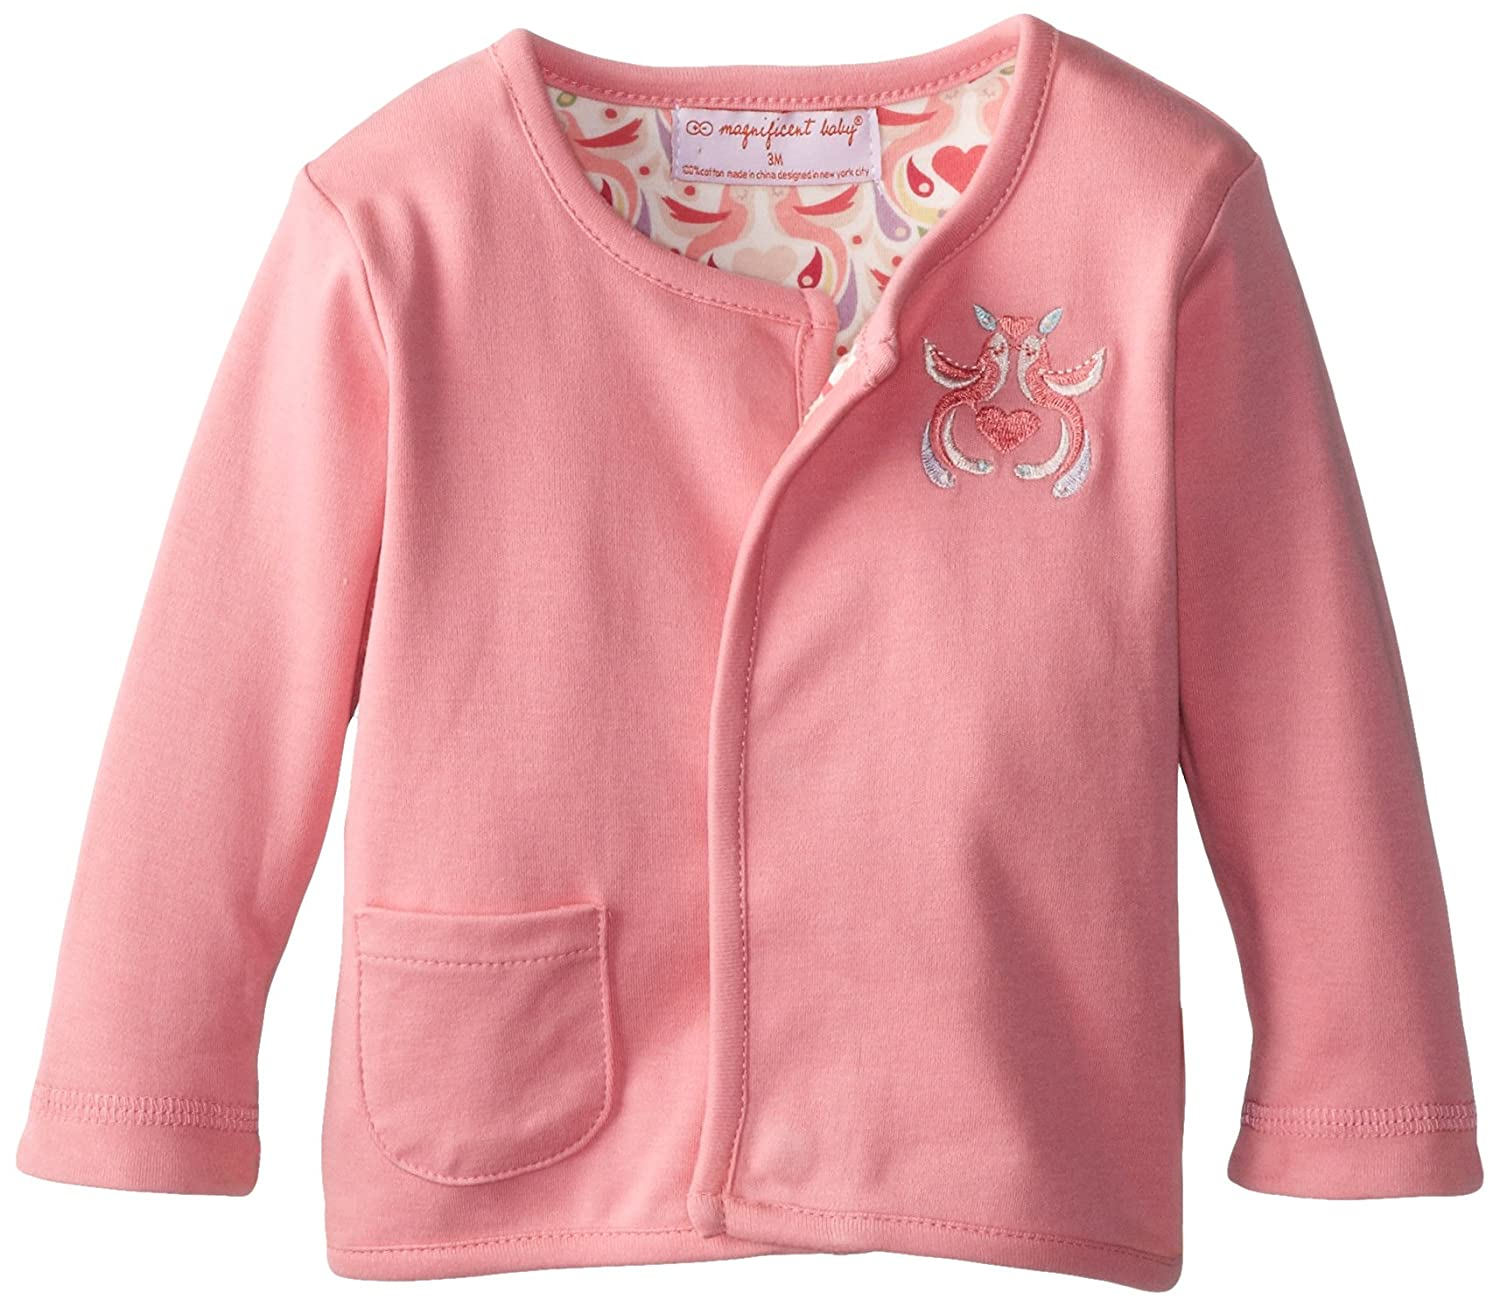 Magnificent Baby Baby-Girls New-Born Lovebird Reversible Cardigan, 3 Months 2212-G